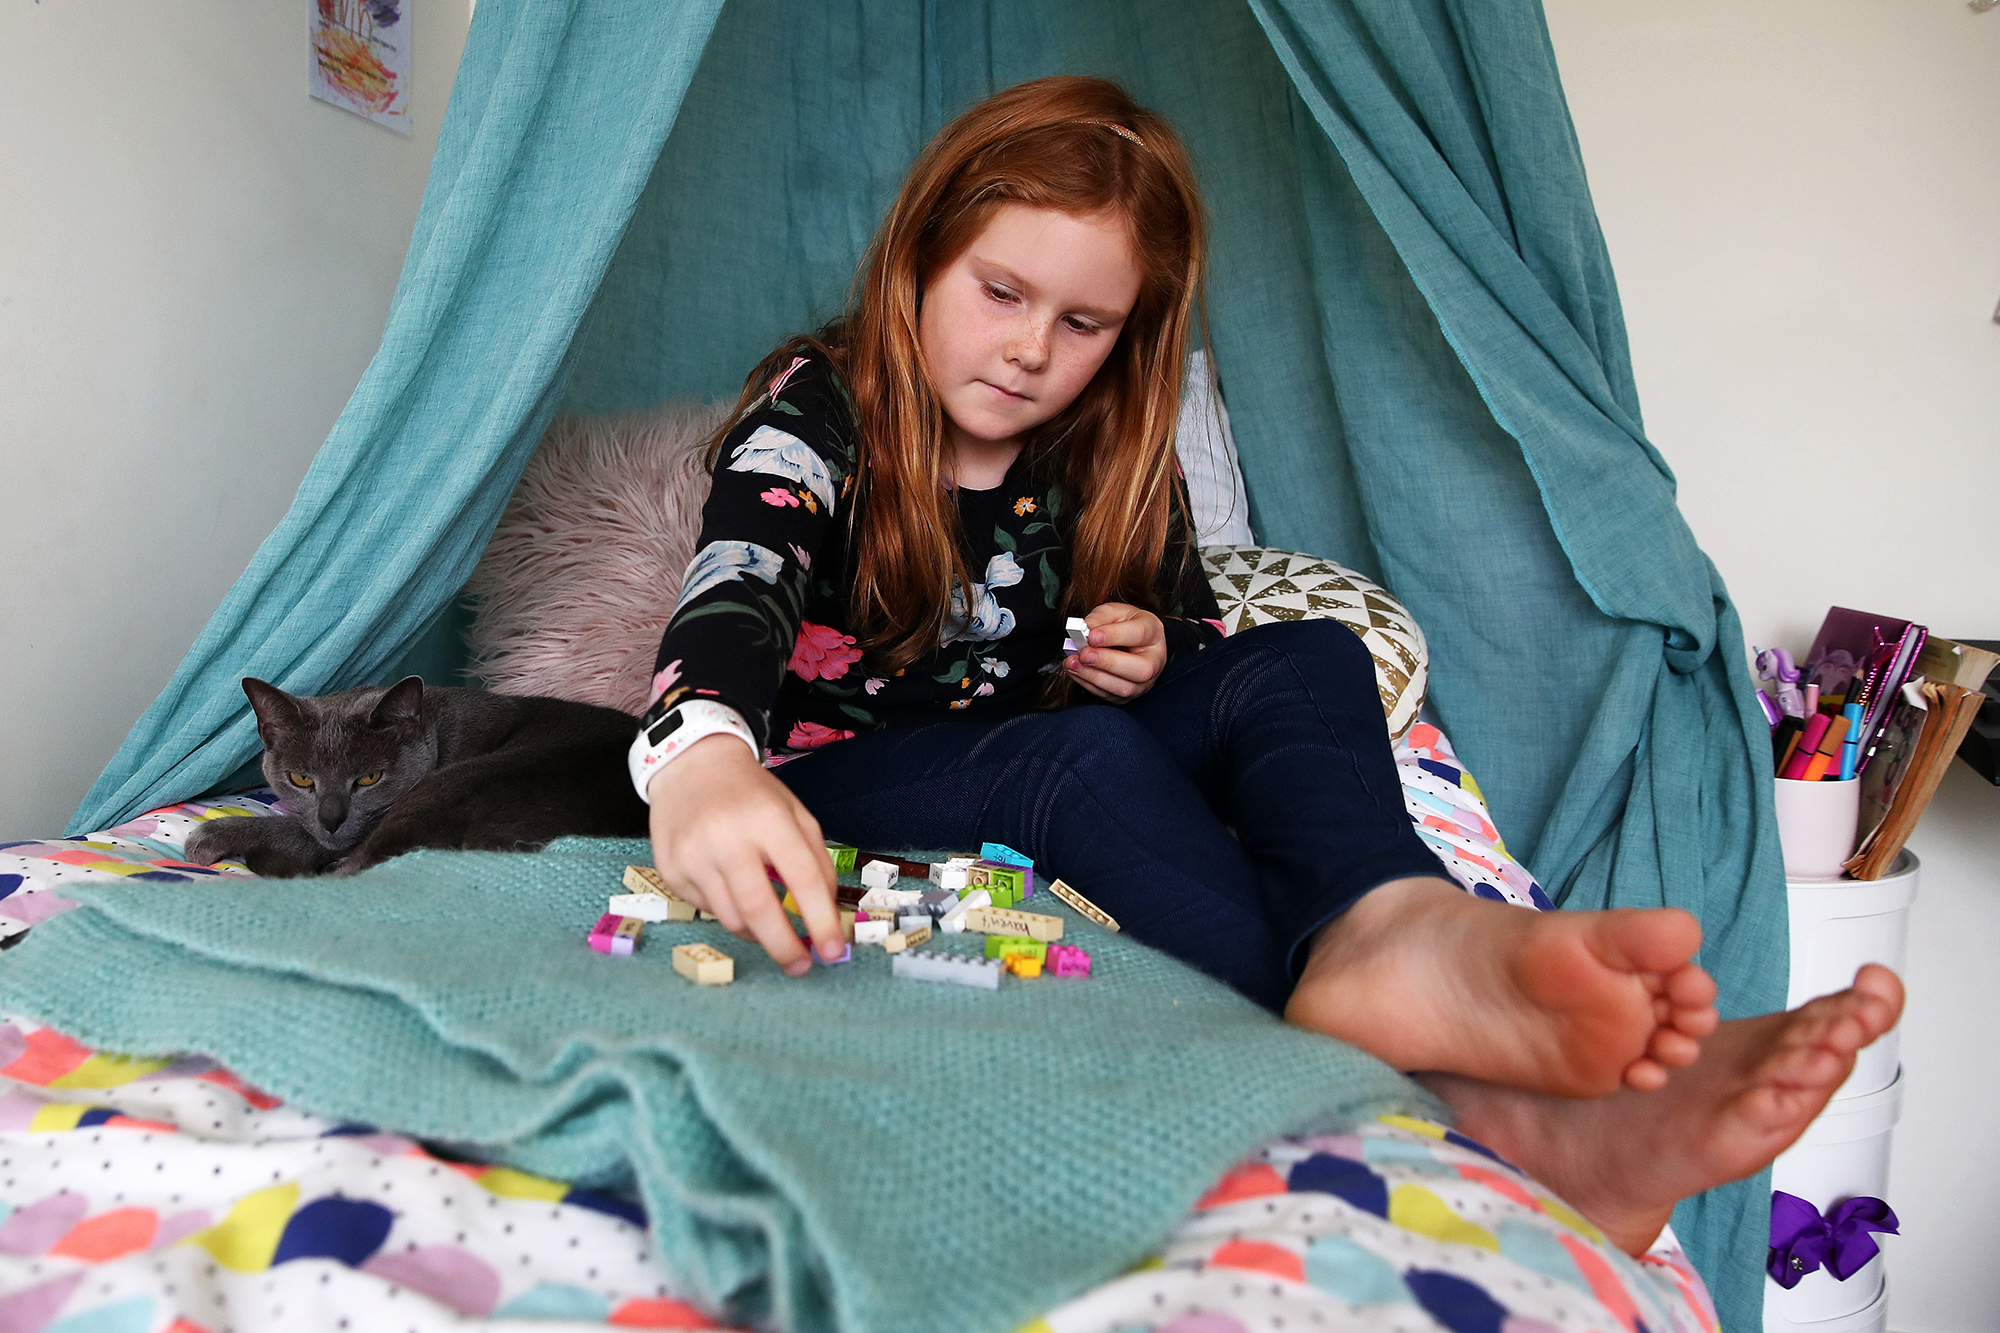 Nina Goodall, 8, works on a lesson in contraction words using Lego her mum made after seeing an example online. (Fiona Goodall/Getty Images via CNN Wire)